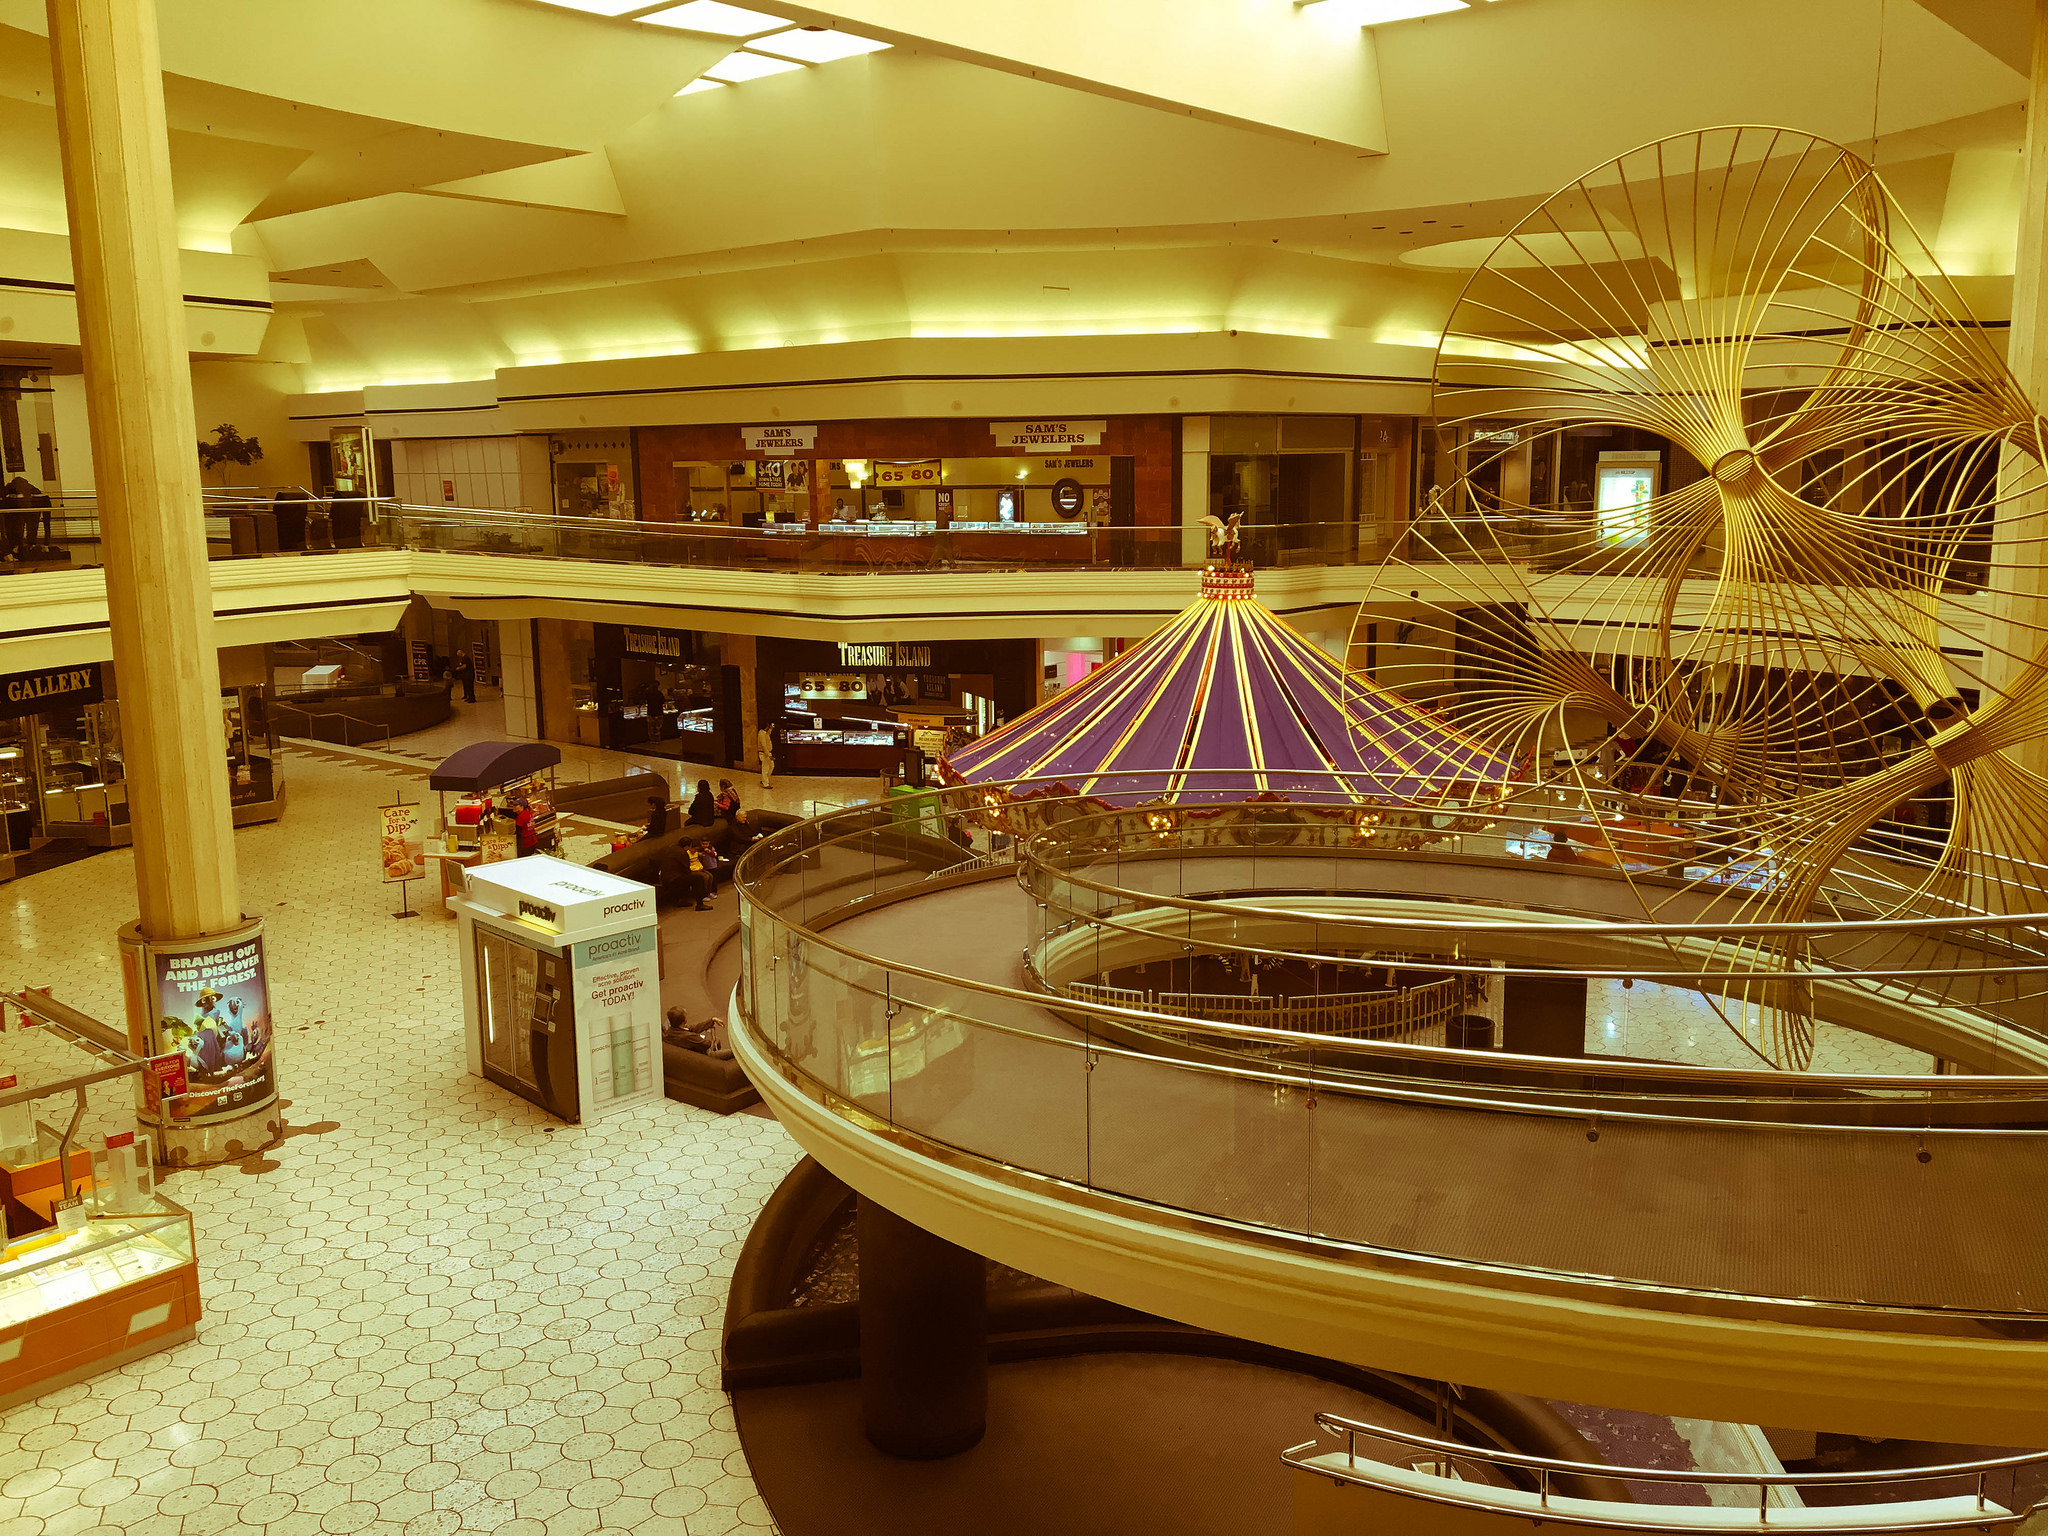 deadmalls | The Wrath of Kon | Jon Konrath, Absurdist Writer